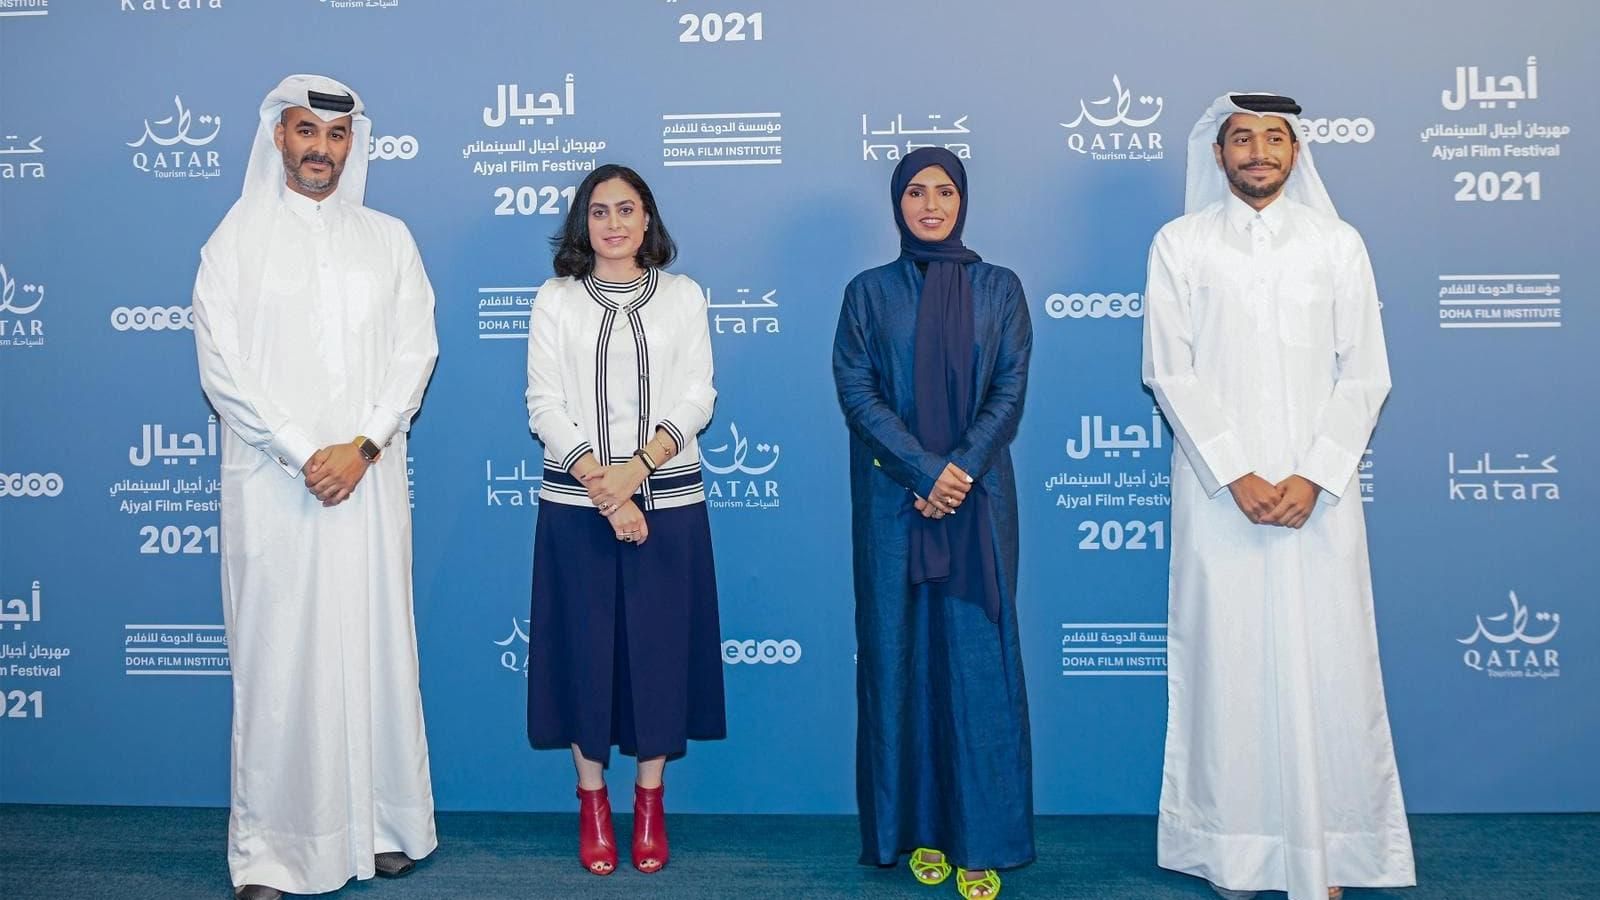 9th edition of Ajyal Film Festival to feature 85 inspiring films from 44 countries